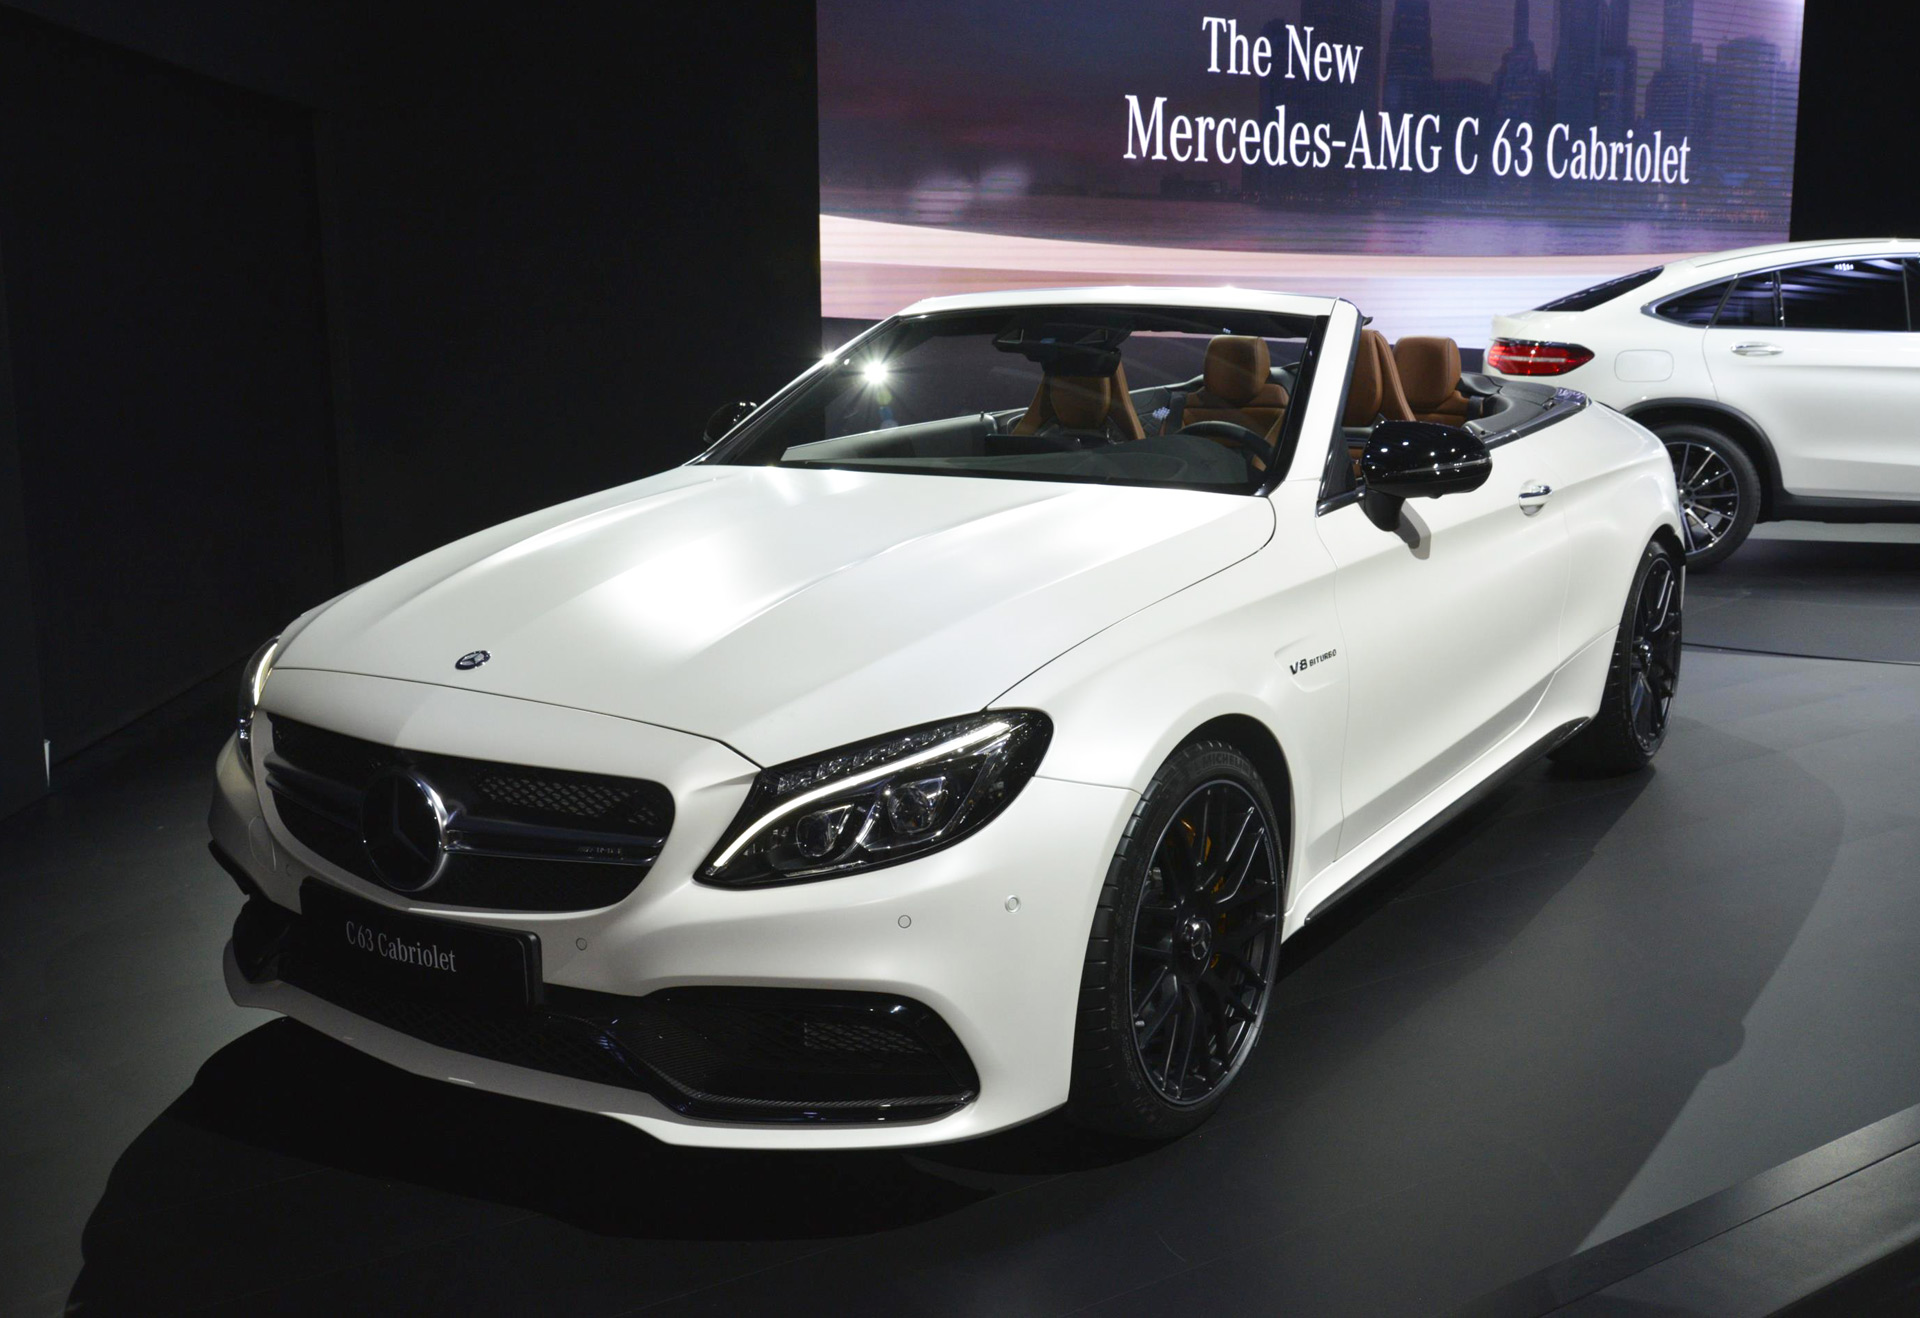 2017 mercedes amg c63 cabriolet debuts in new york live photos and video. Black Bedroom Furniture Sets. Home Design Ideas